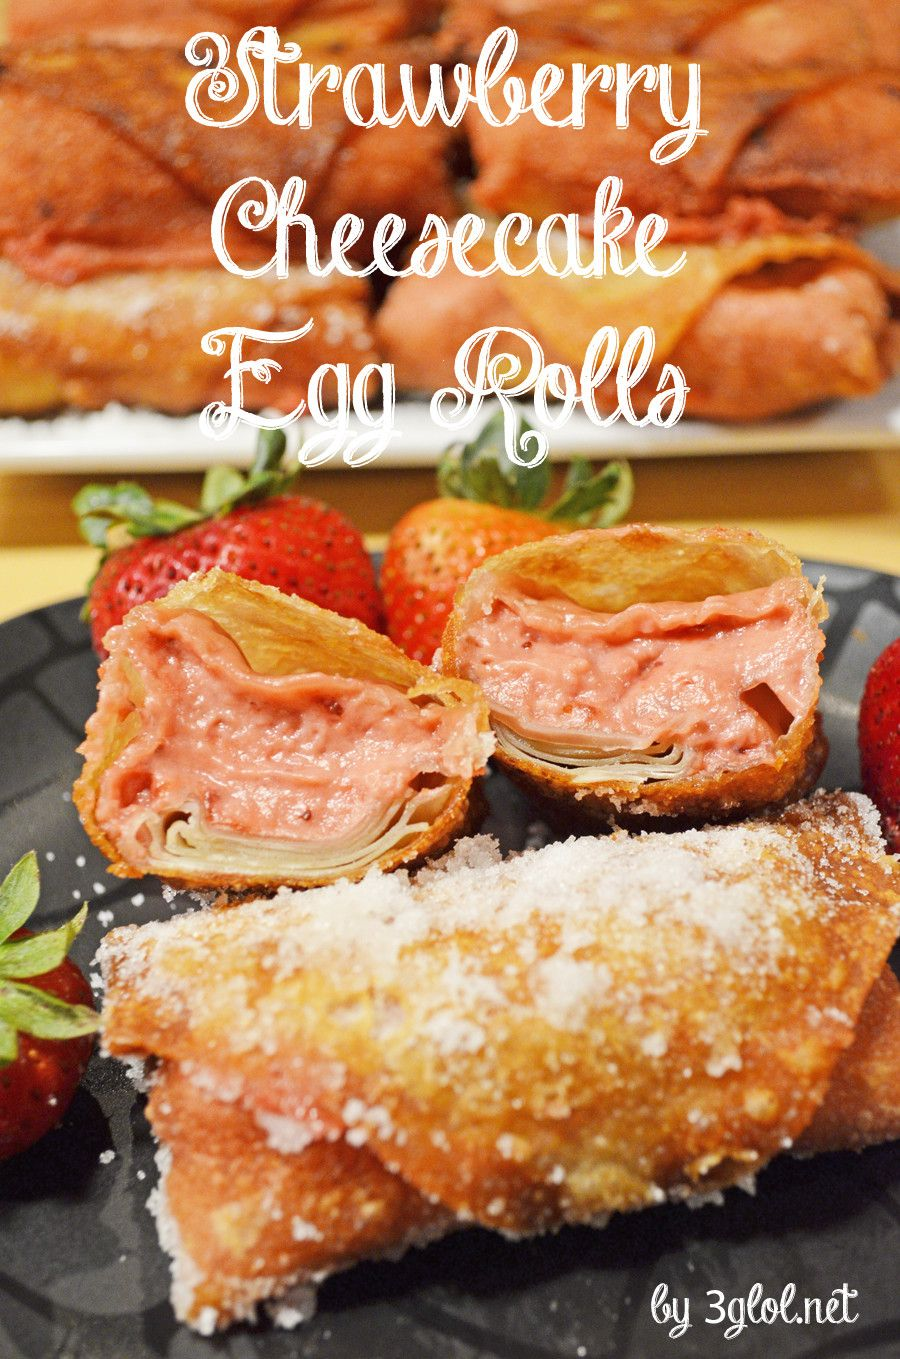 Strawberry Cheesecake Egg Rolls. A unique fusion of strawberry cheesecake and egg rolls.  Great hand held dessert for parties. #cheesecake #recipe #eggrolls #eggrolls